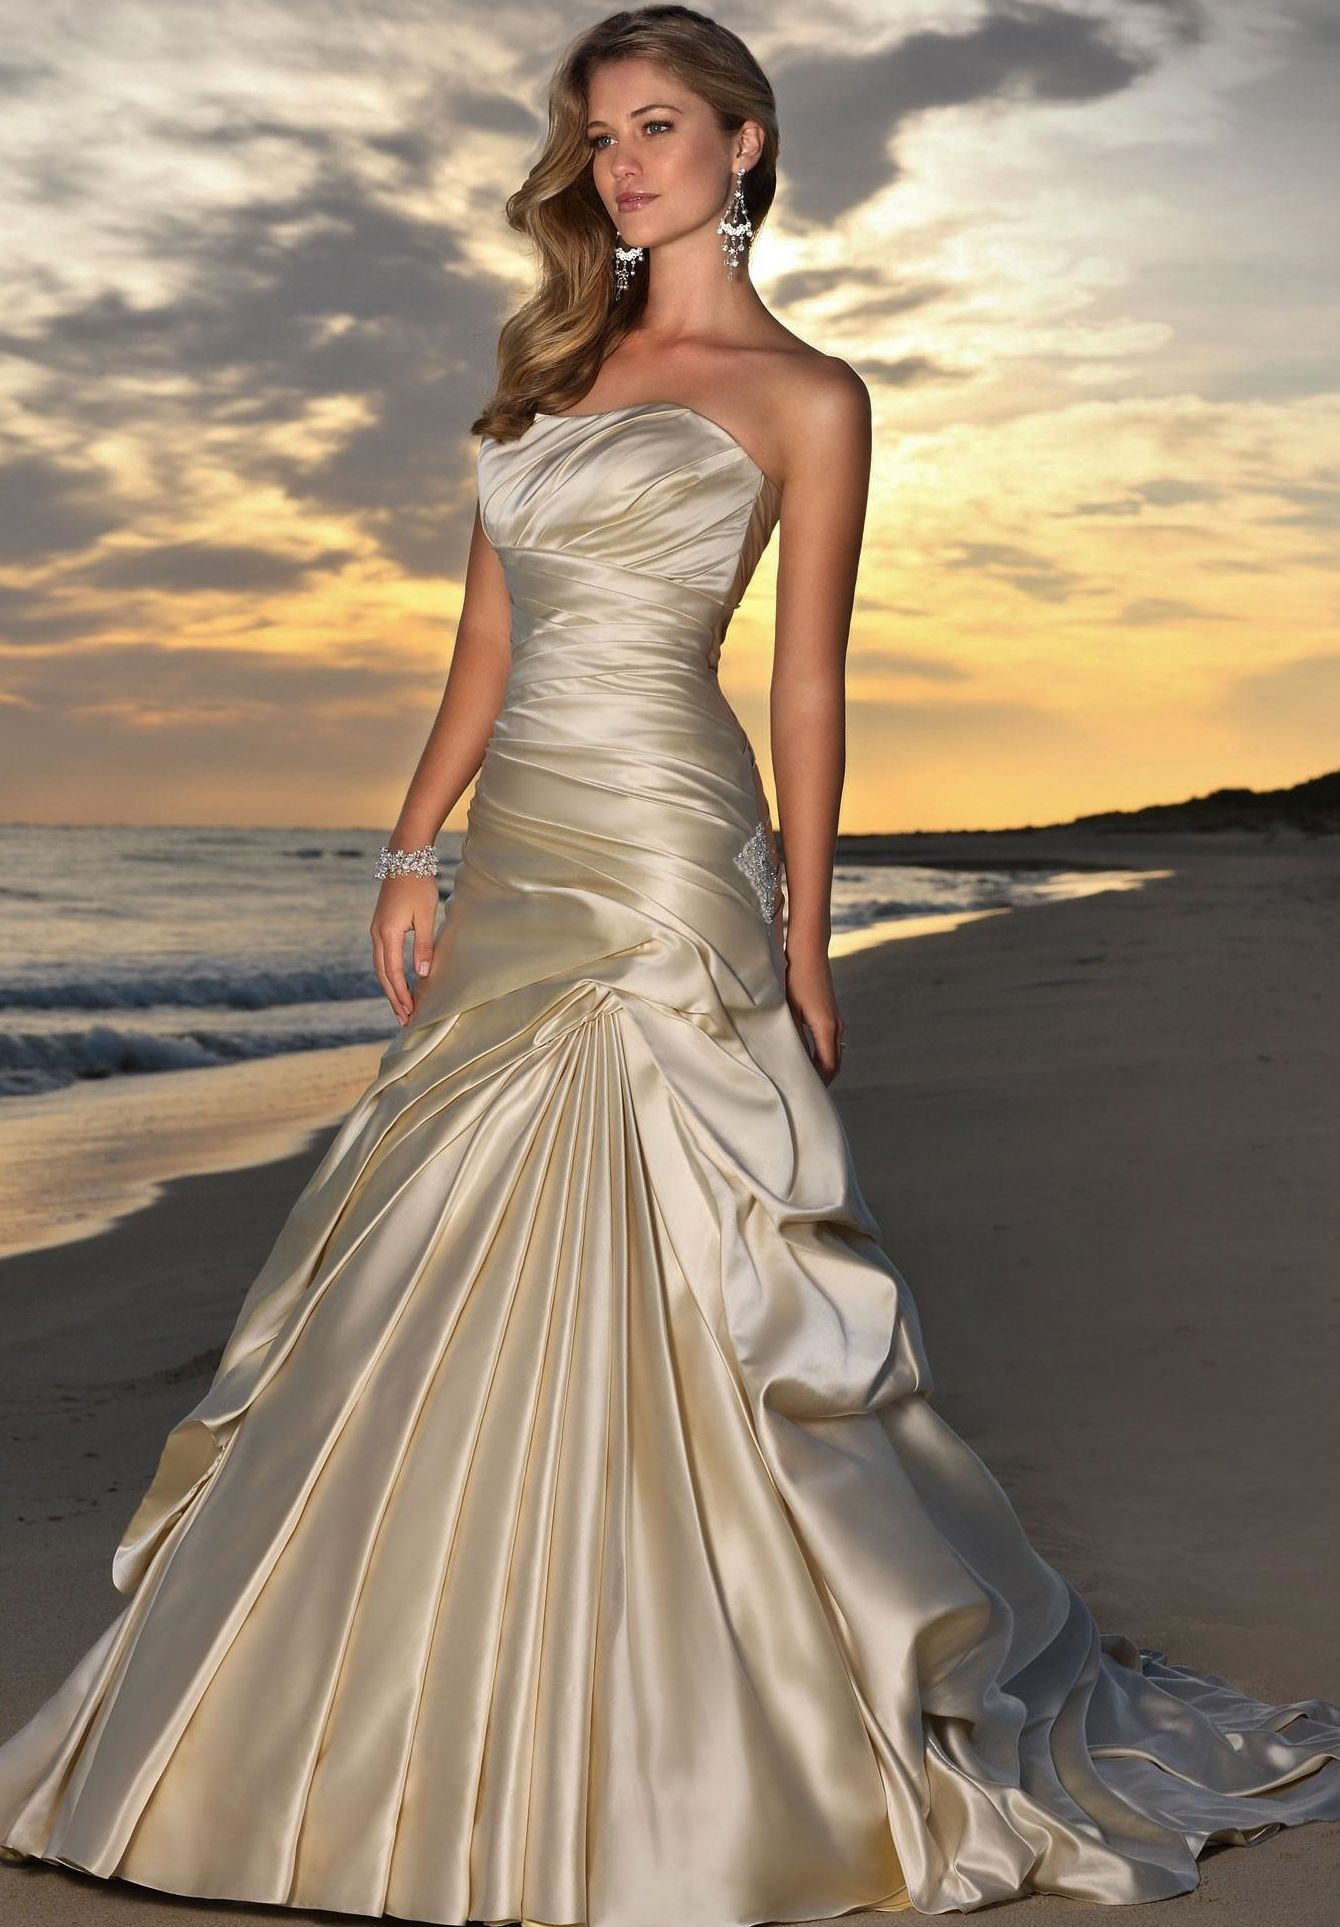 Champagne Color Wedding Dresses Of Things To Wear On Pinterest Champagne Wedding Dresses